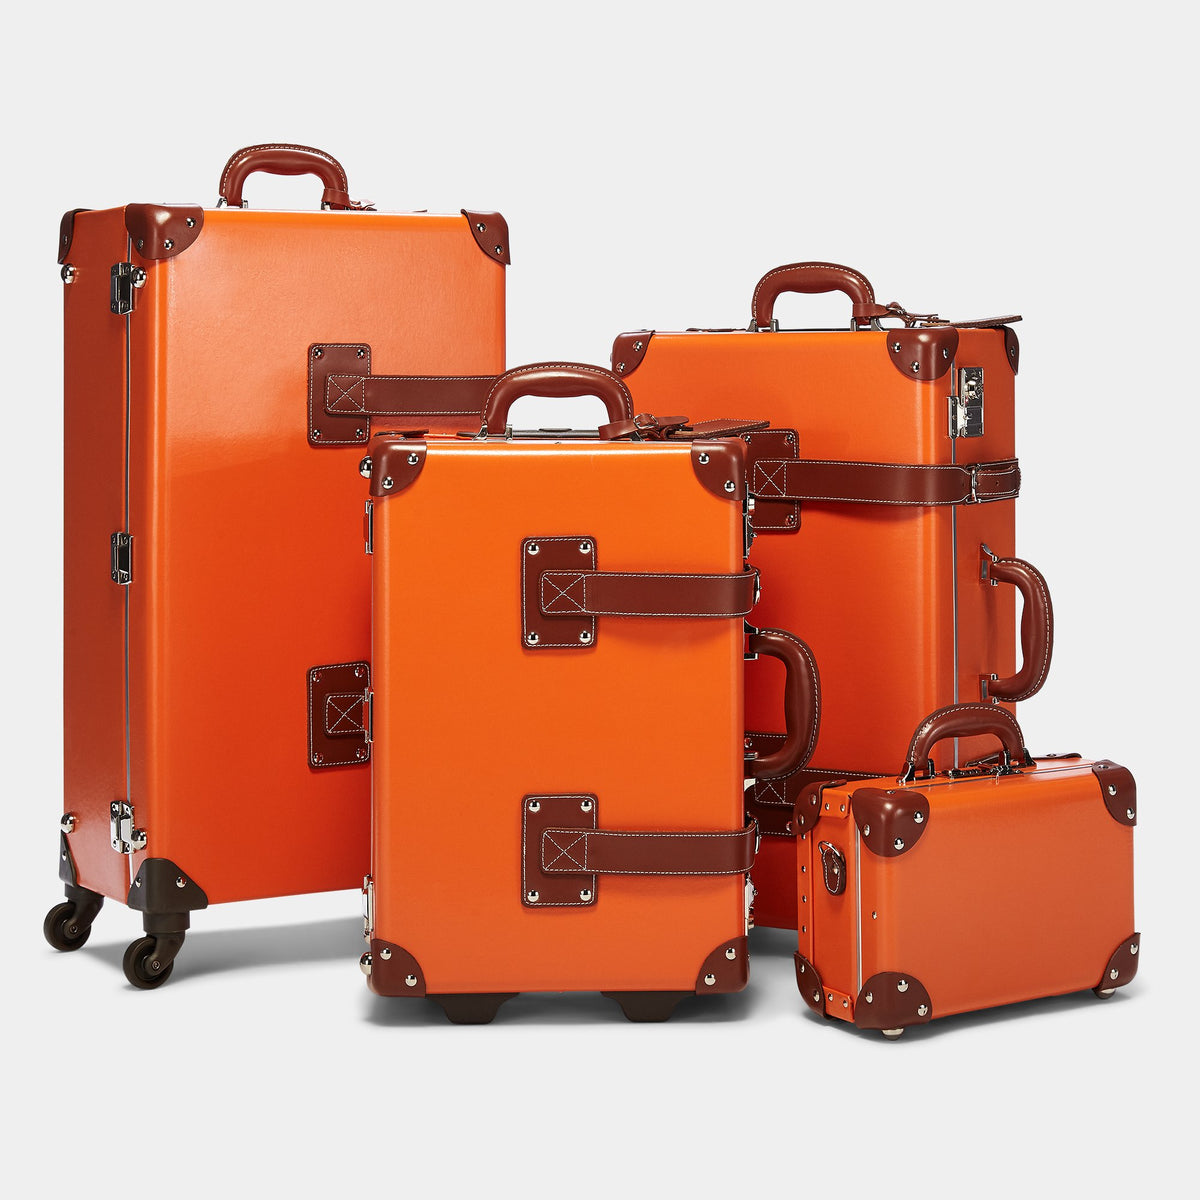 The Anthropologist Spinner in Orange - Vintage Style Leather Case - Alongside matching cases from the Anthropologist Orange collection